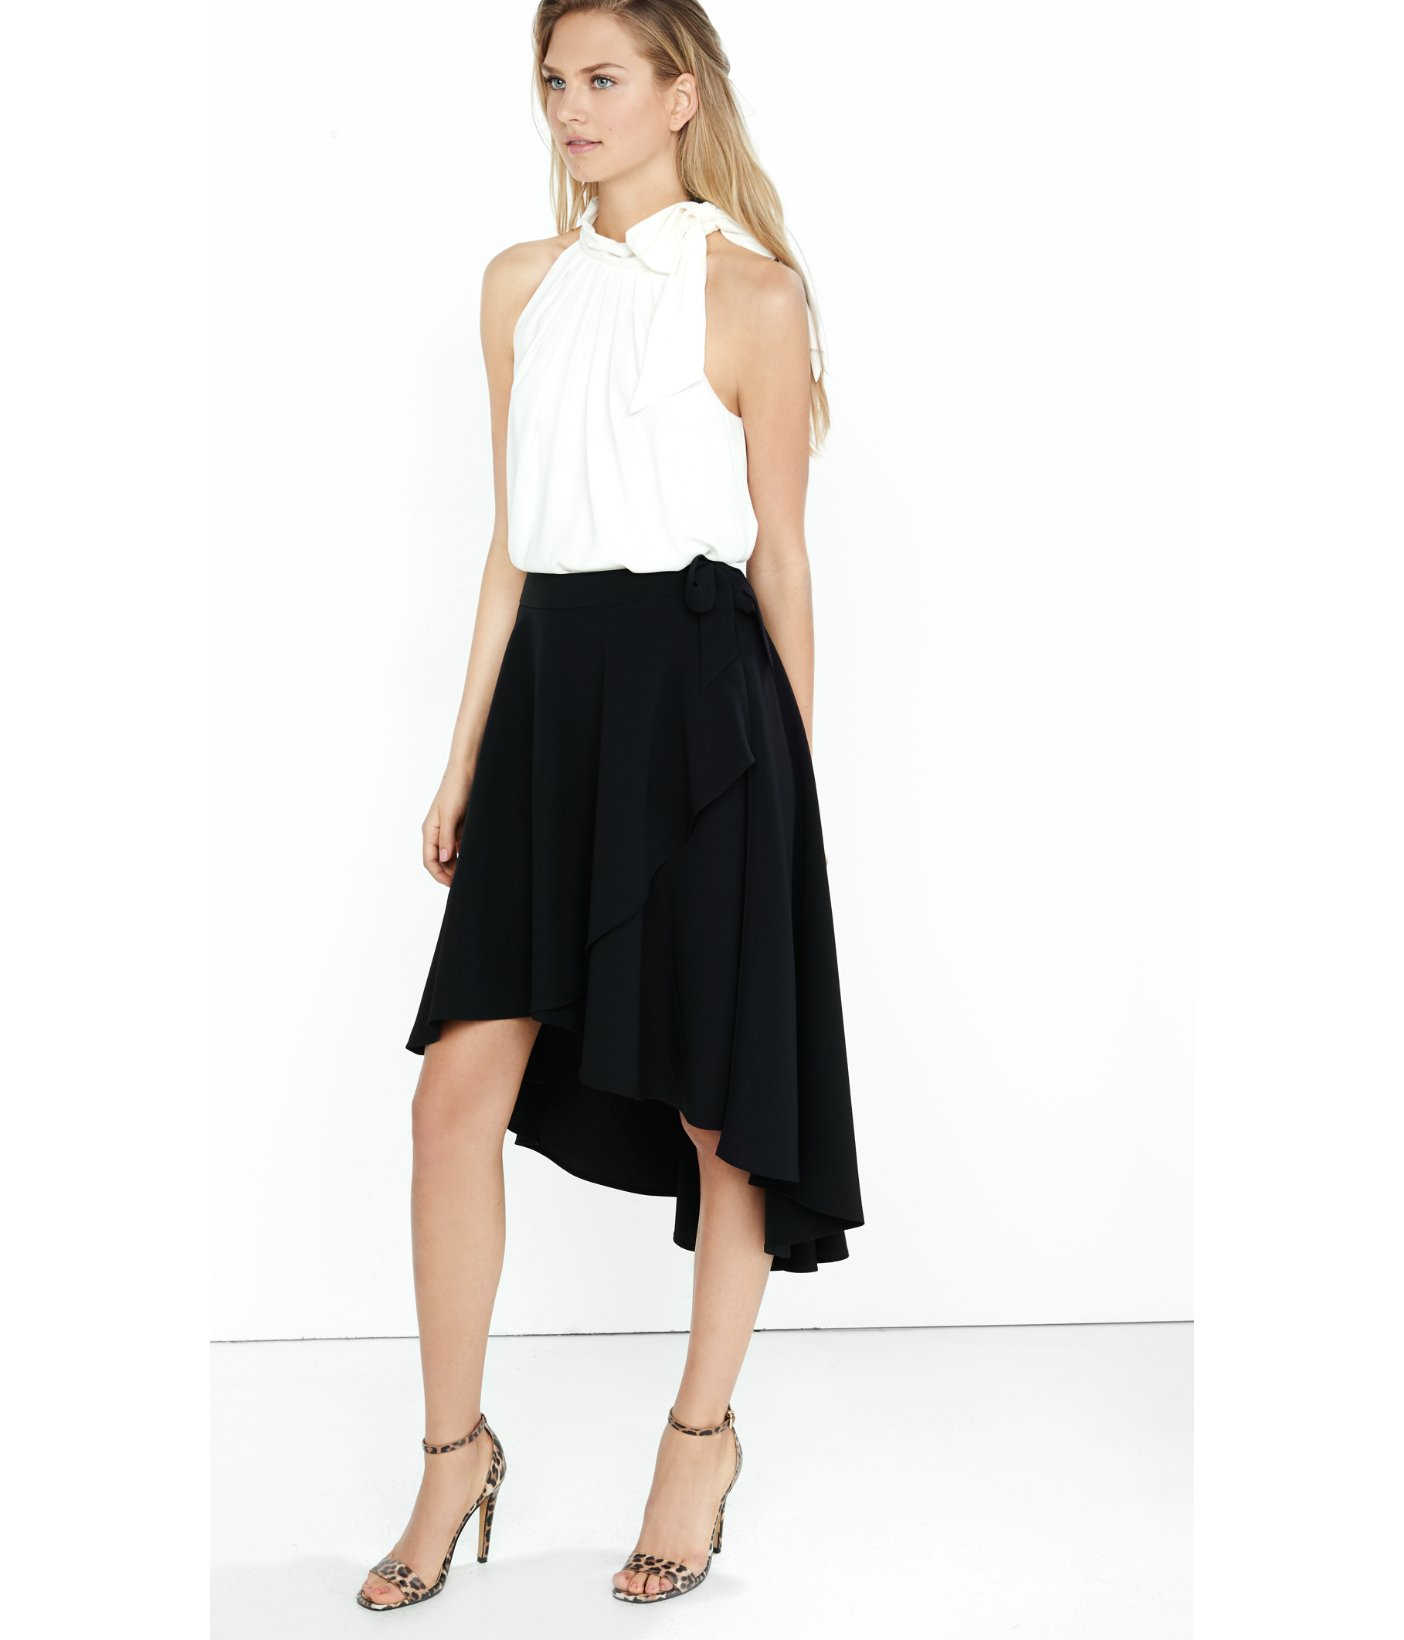 Express Black Hi-lo Wrap Midi Skirt in Black | Lyst